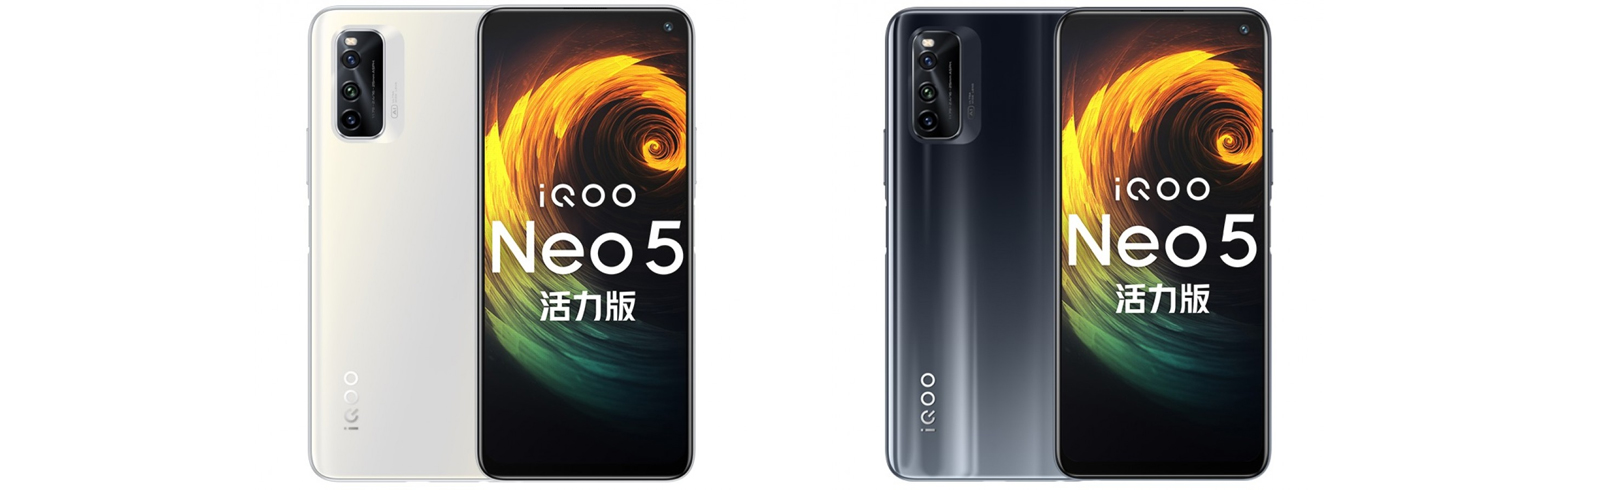 """iQOO Neo5 Lite is unveiled sporting a Snapdragon 870 chipset and a 144Hz, 6.57"""" IPS display"""